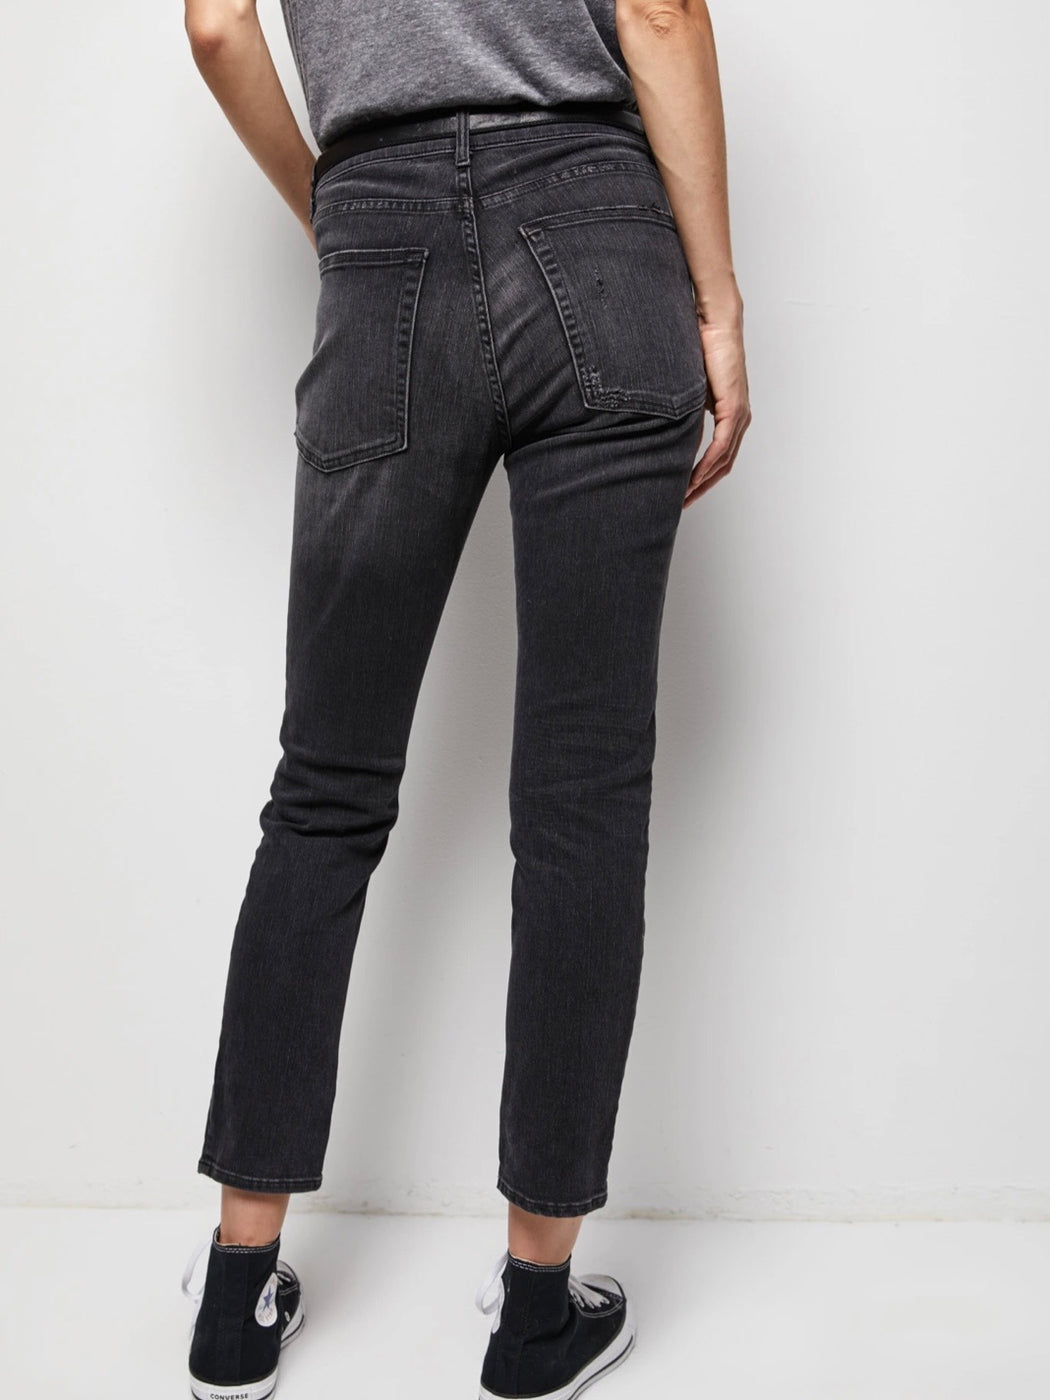 Nili Lotan Mid Rise Jean in Distressed Black with Finished Hem